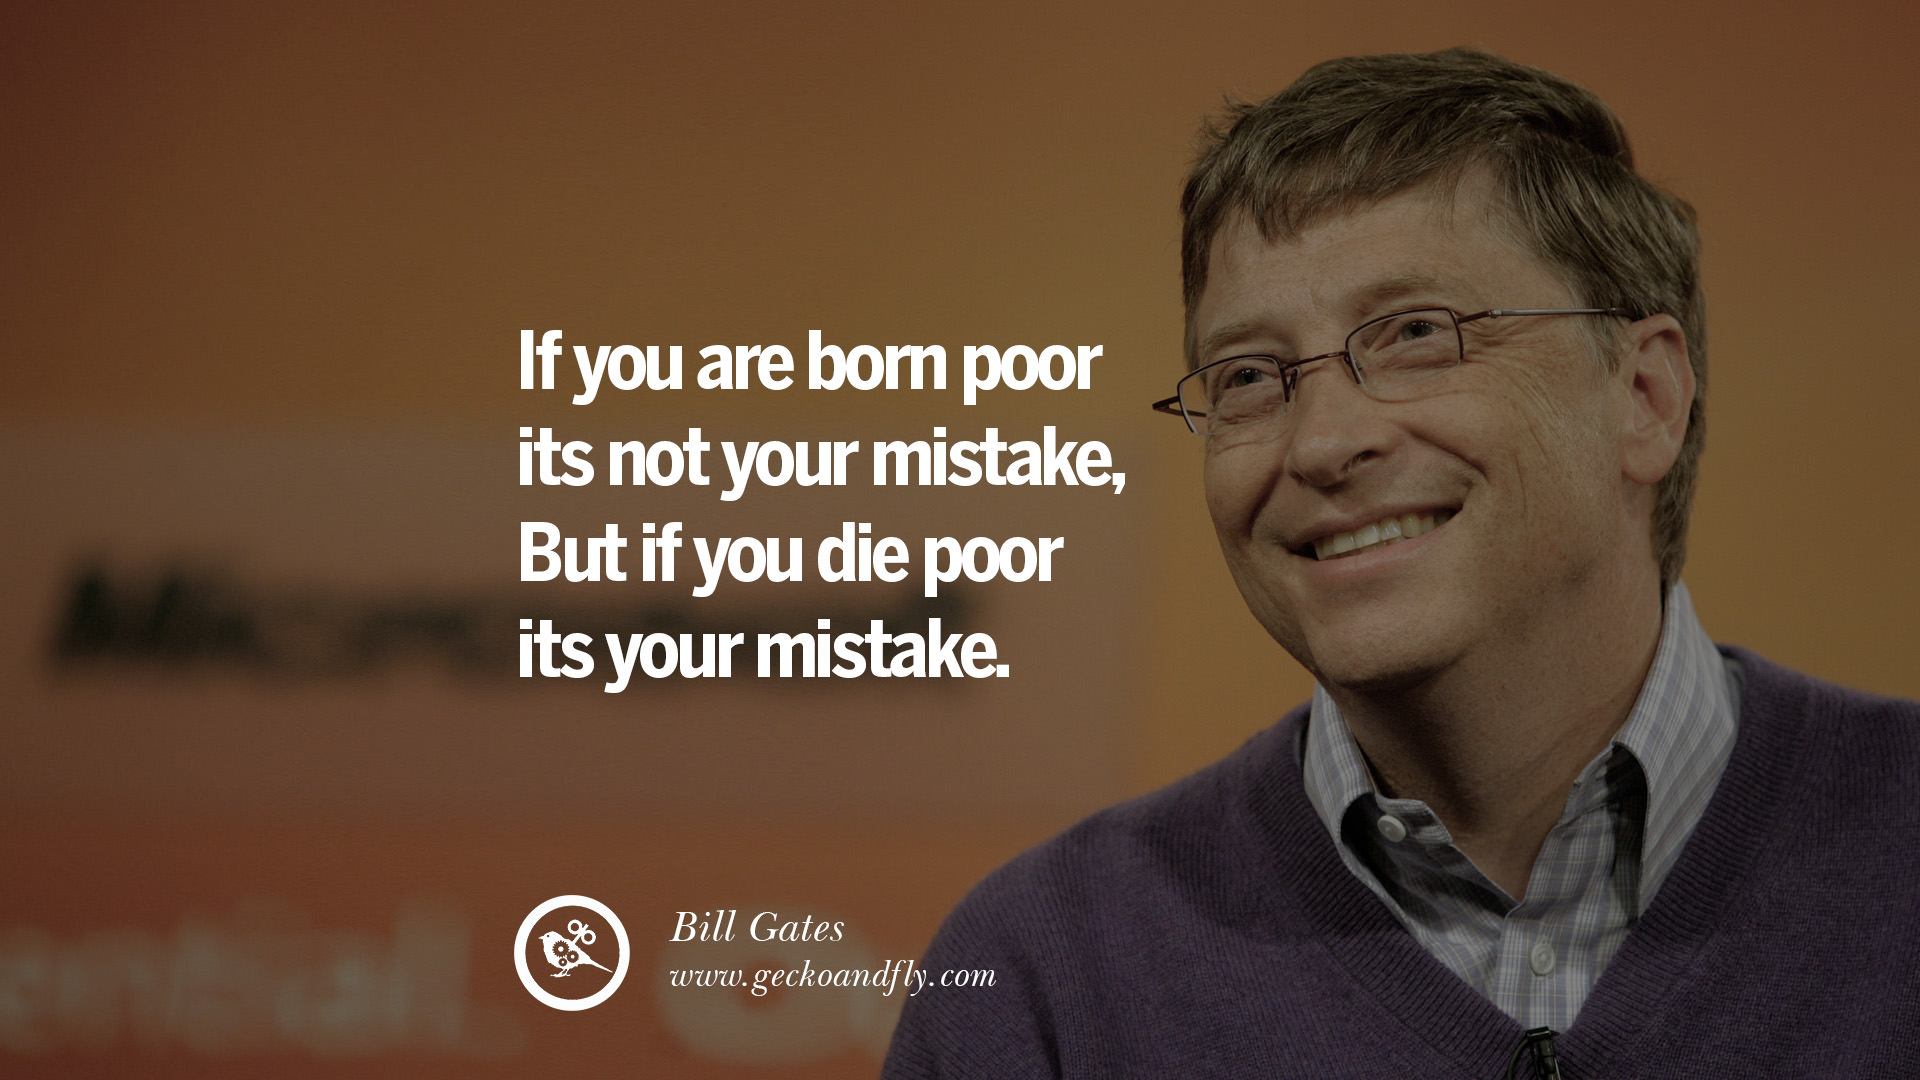 Top Quotes 15 Inspiring Bill Gates Quotes On Success And Life  Geckoandfly 2018